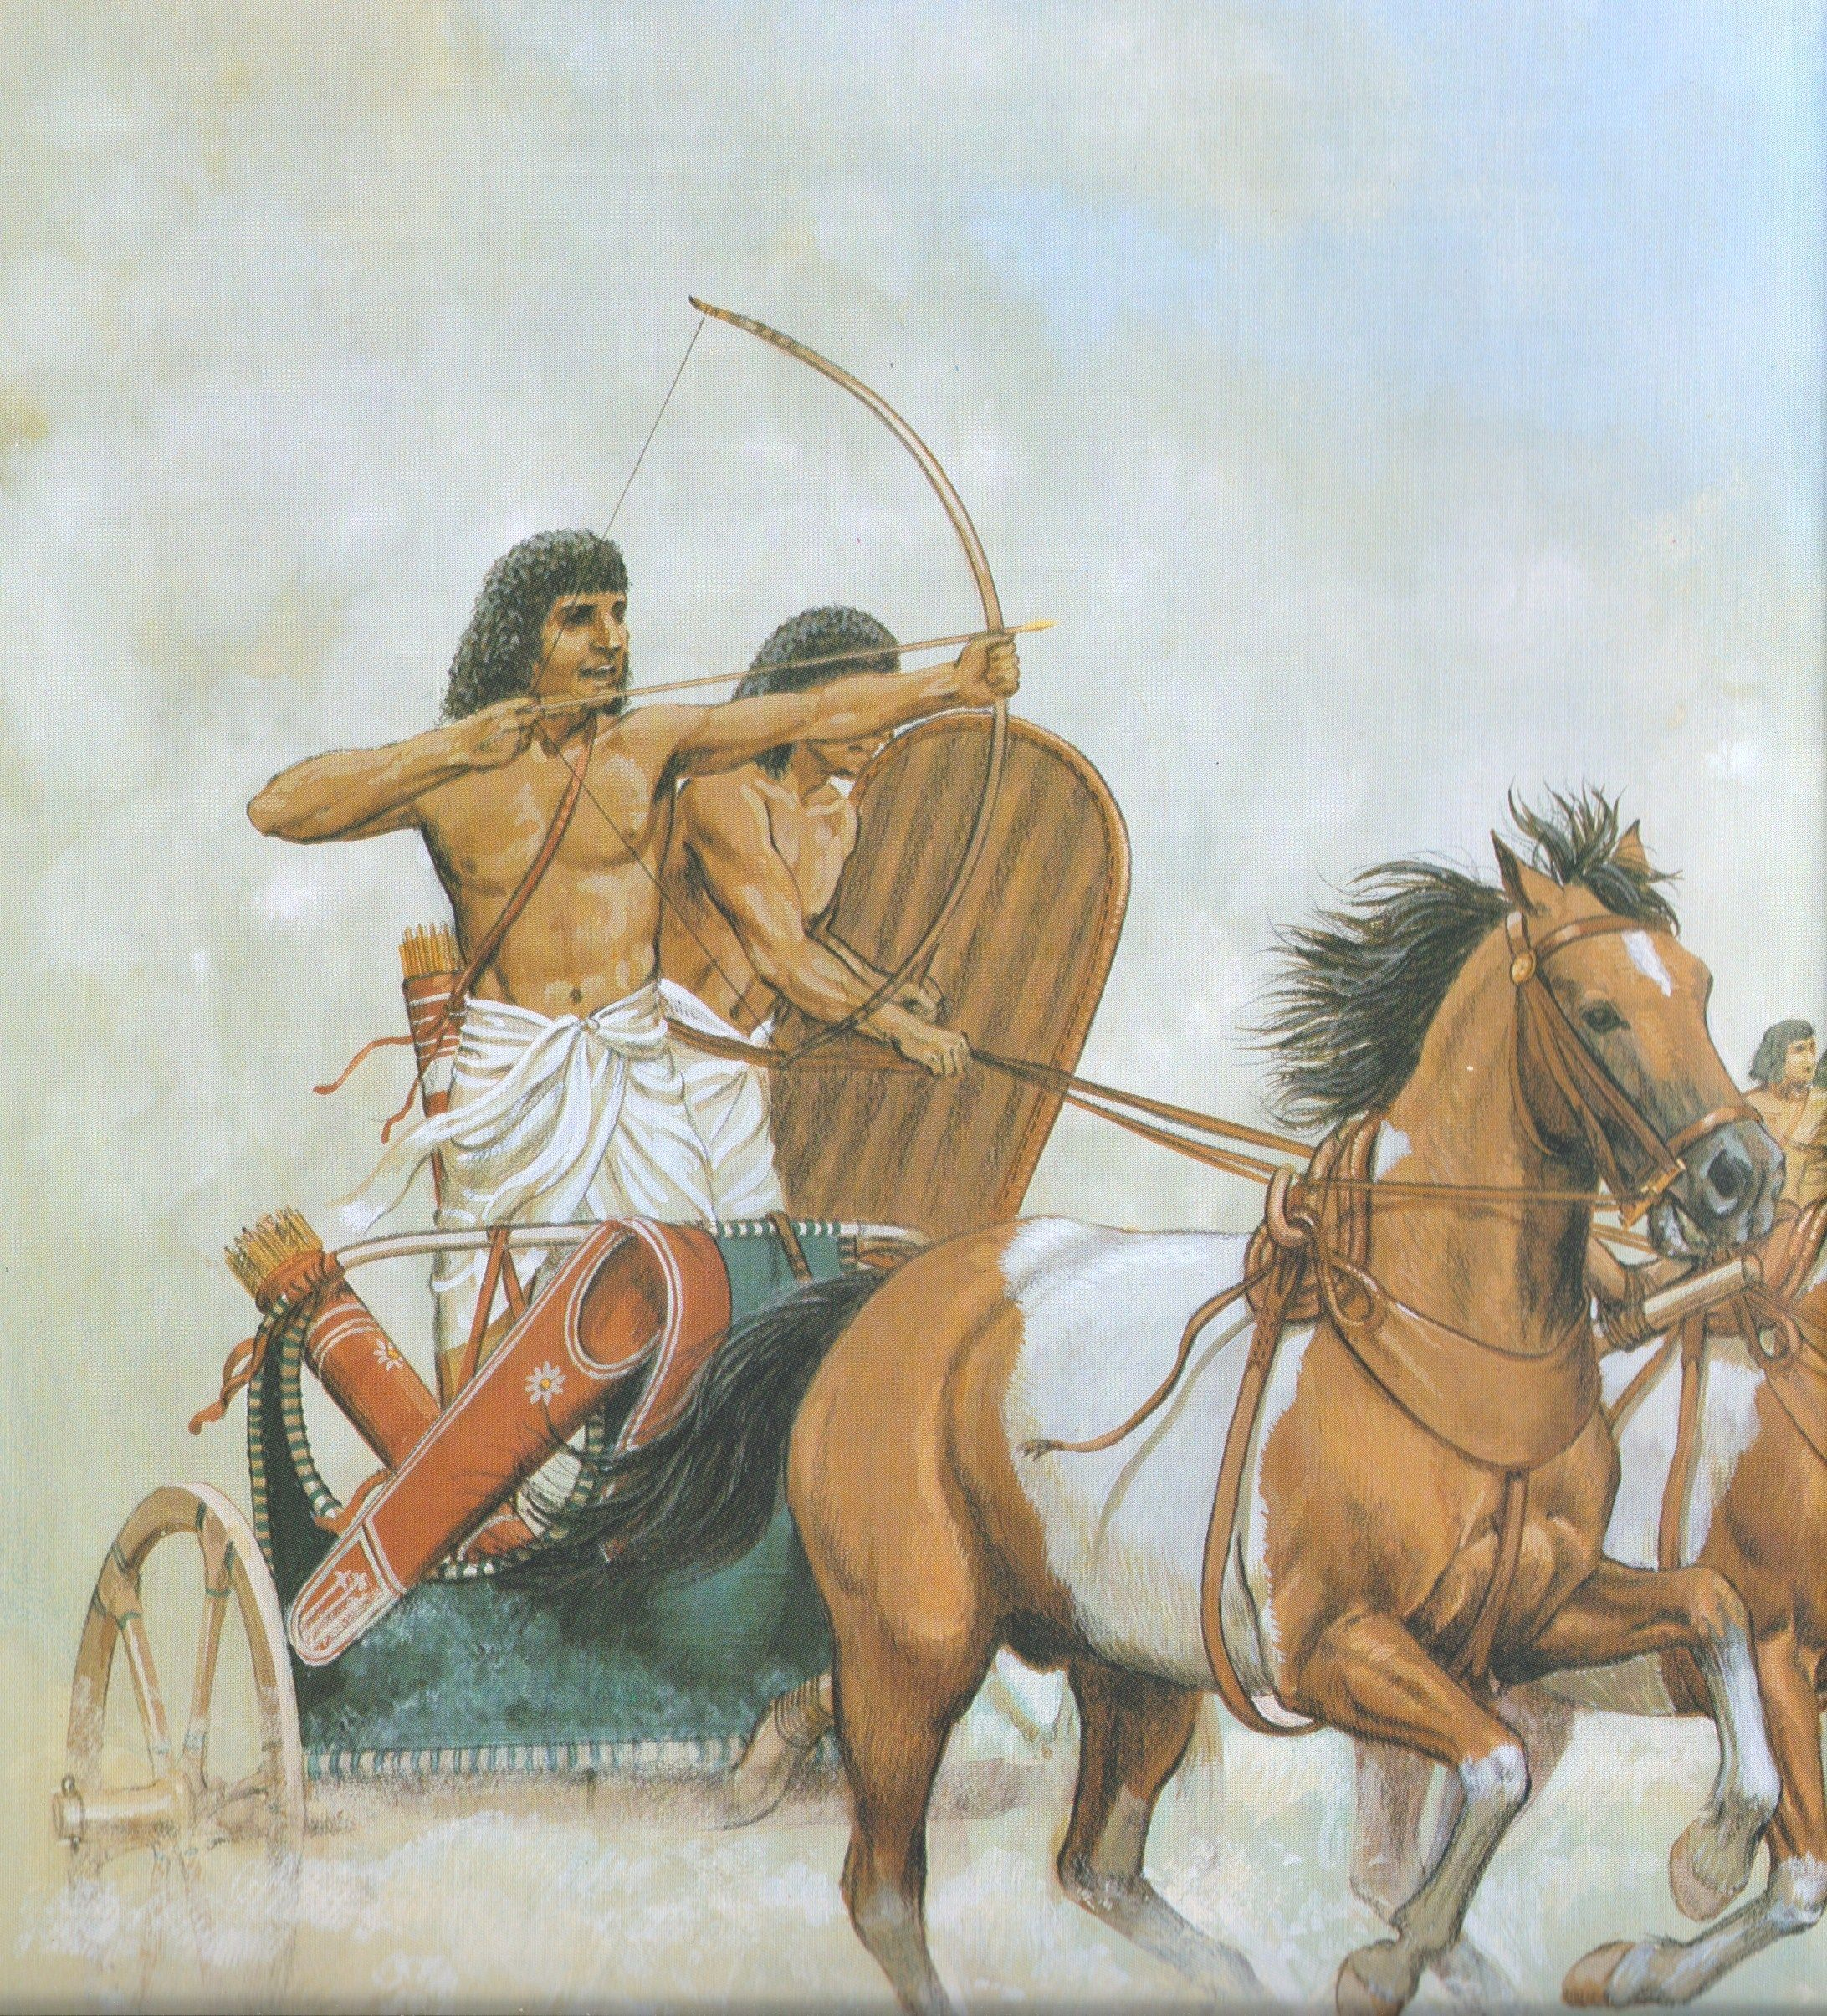 egypt warfare Egypt then began its slow decline, threatened by the assyrians, an aggressive mounted force using crude but successful tactics and weaponry the availability of quality horses also determined the use of chariots, and as egypt, the main supplier of horses, declined so did the use of the chariot.